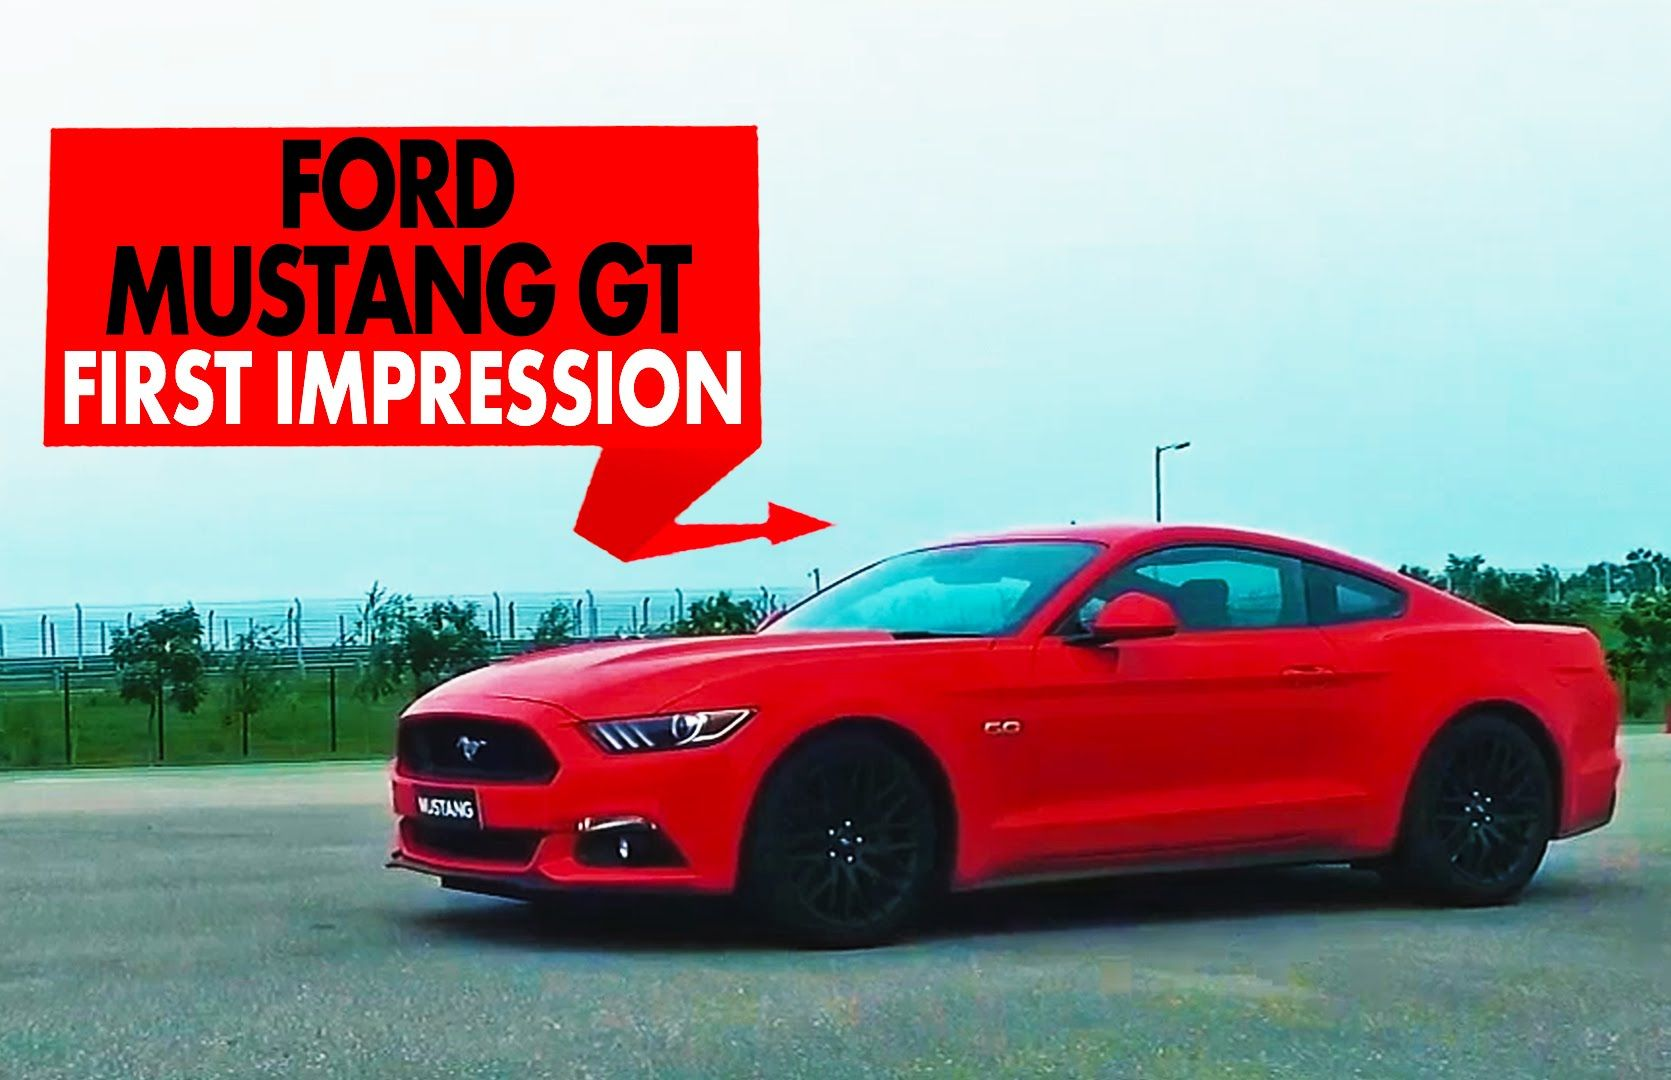 The Ford Mustang Gt Is An Icon A Car That Has Been The Machine